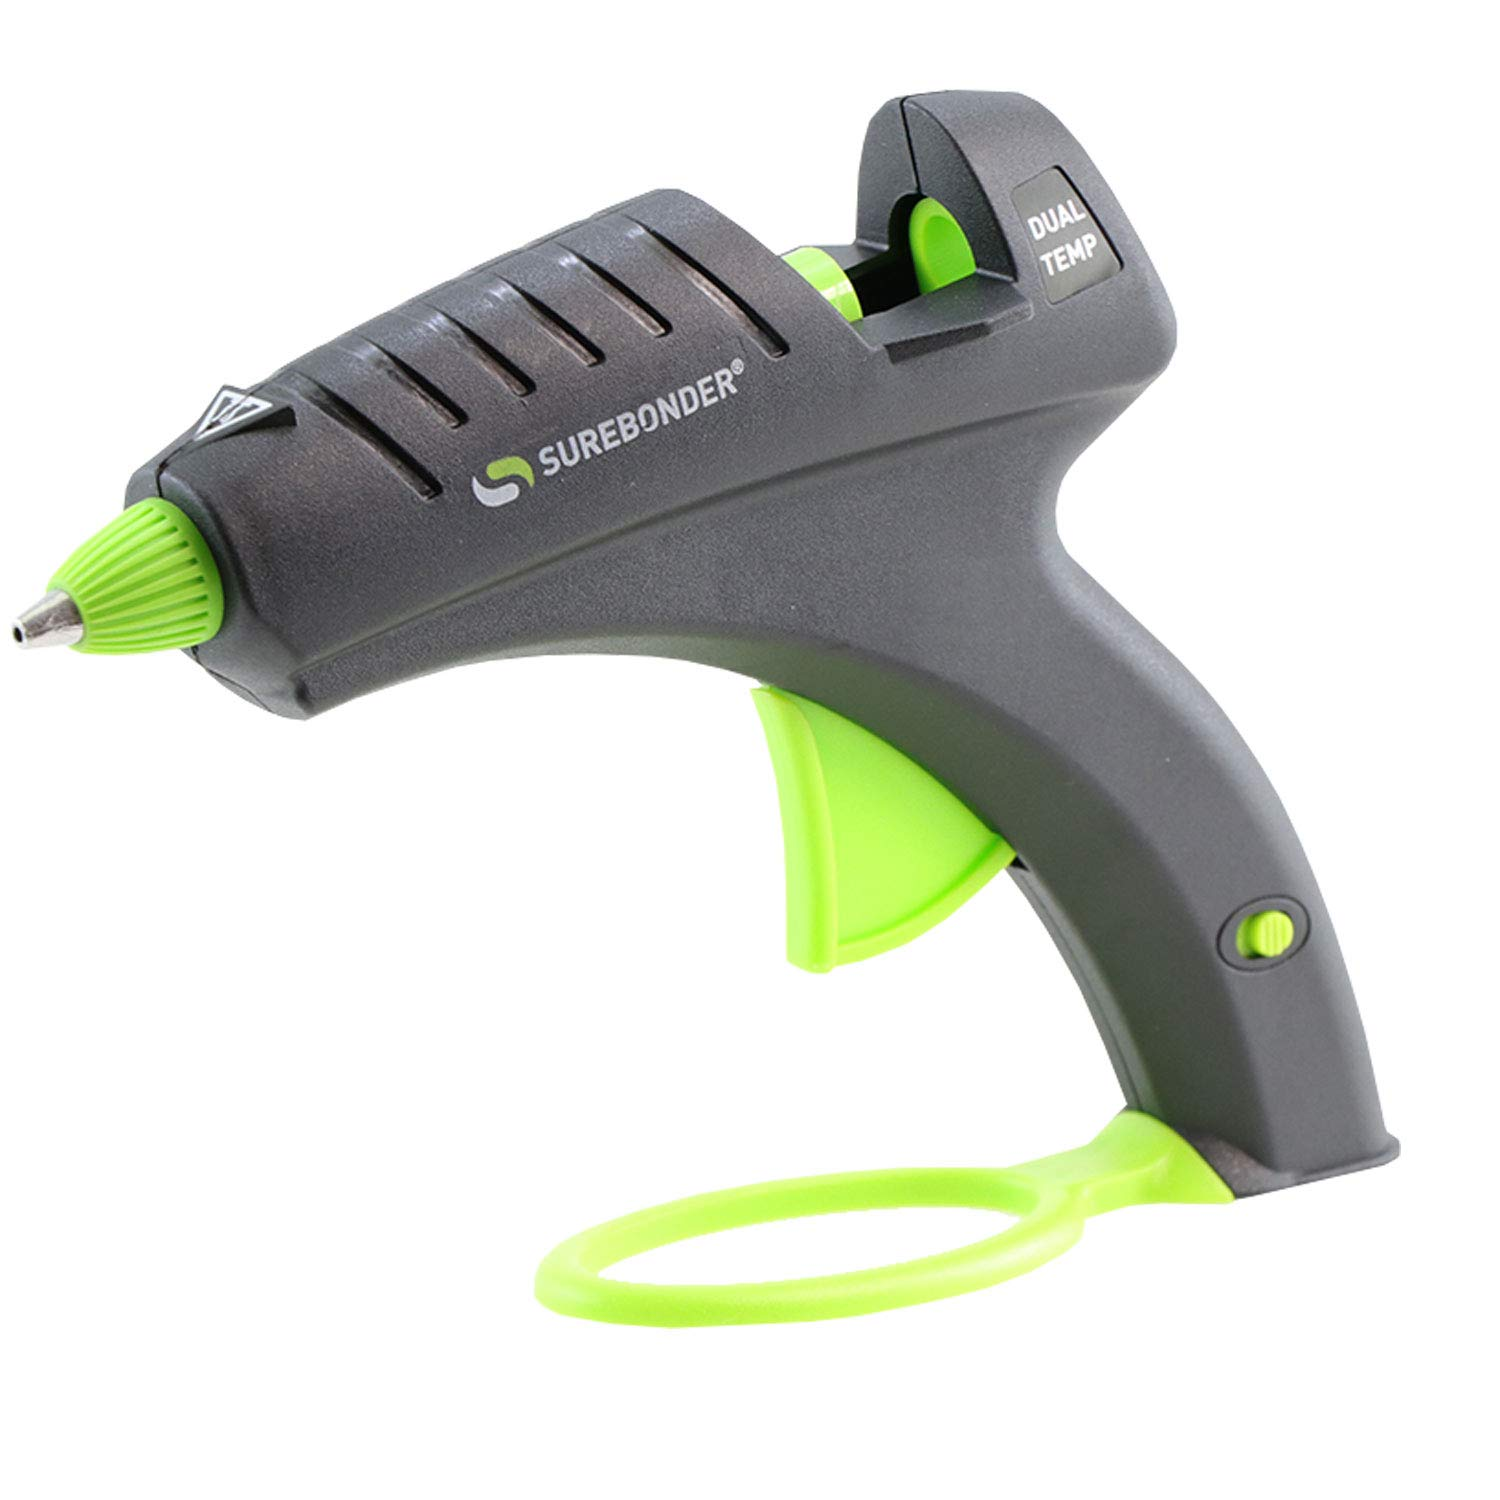 Specialty Series 40 Watt Cordless/Corded Dual Temp Glue Gun